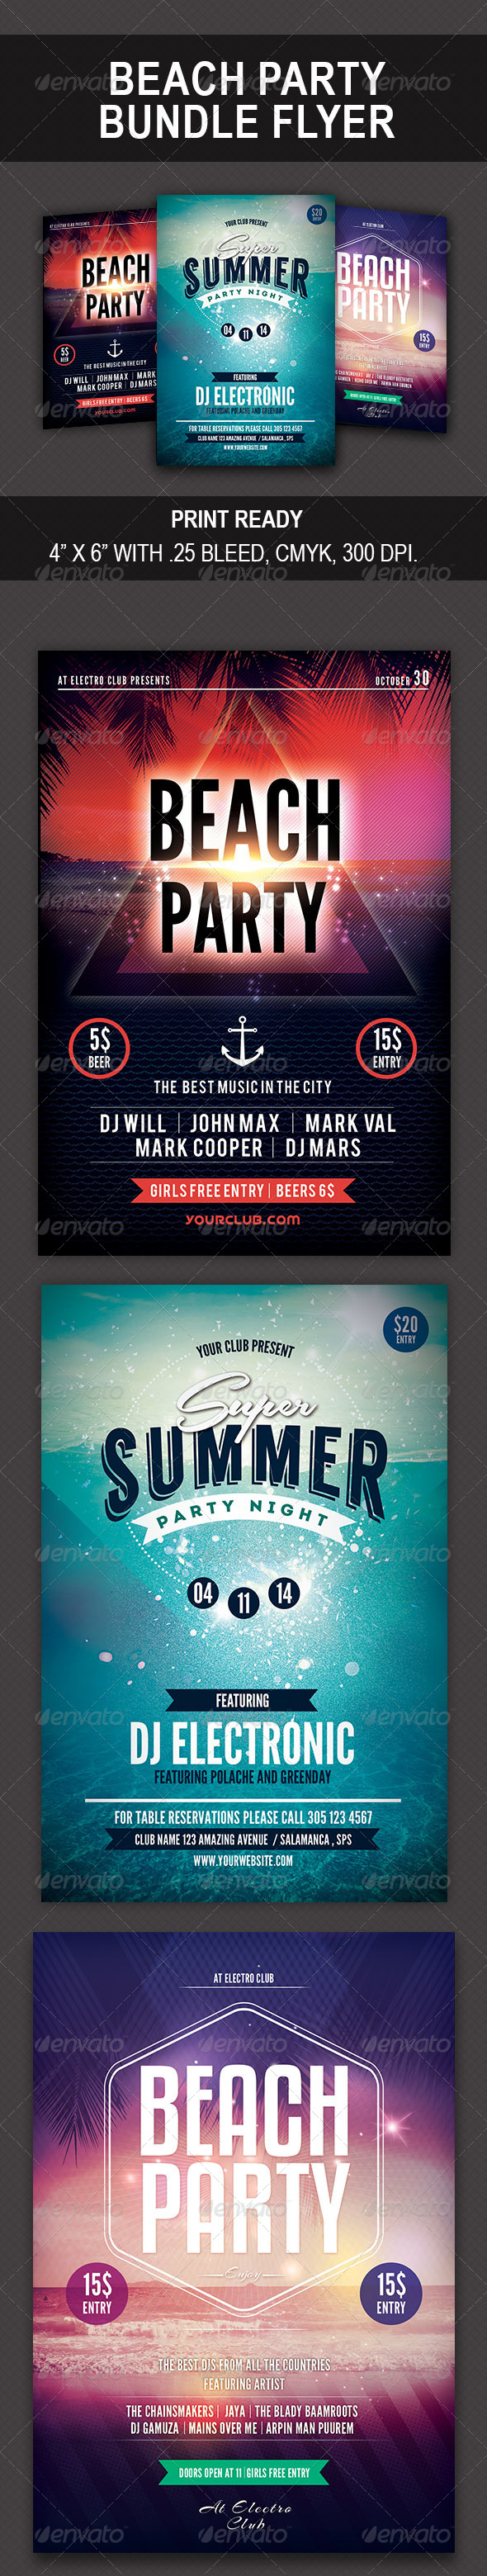 GraphicRiver Beach Party Bundle Flyer 8607356